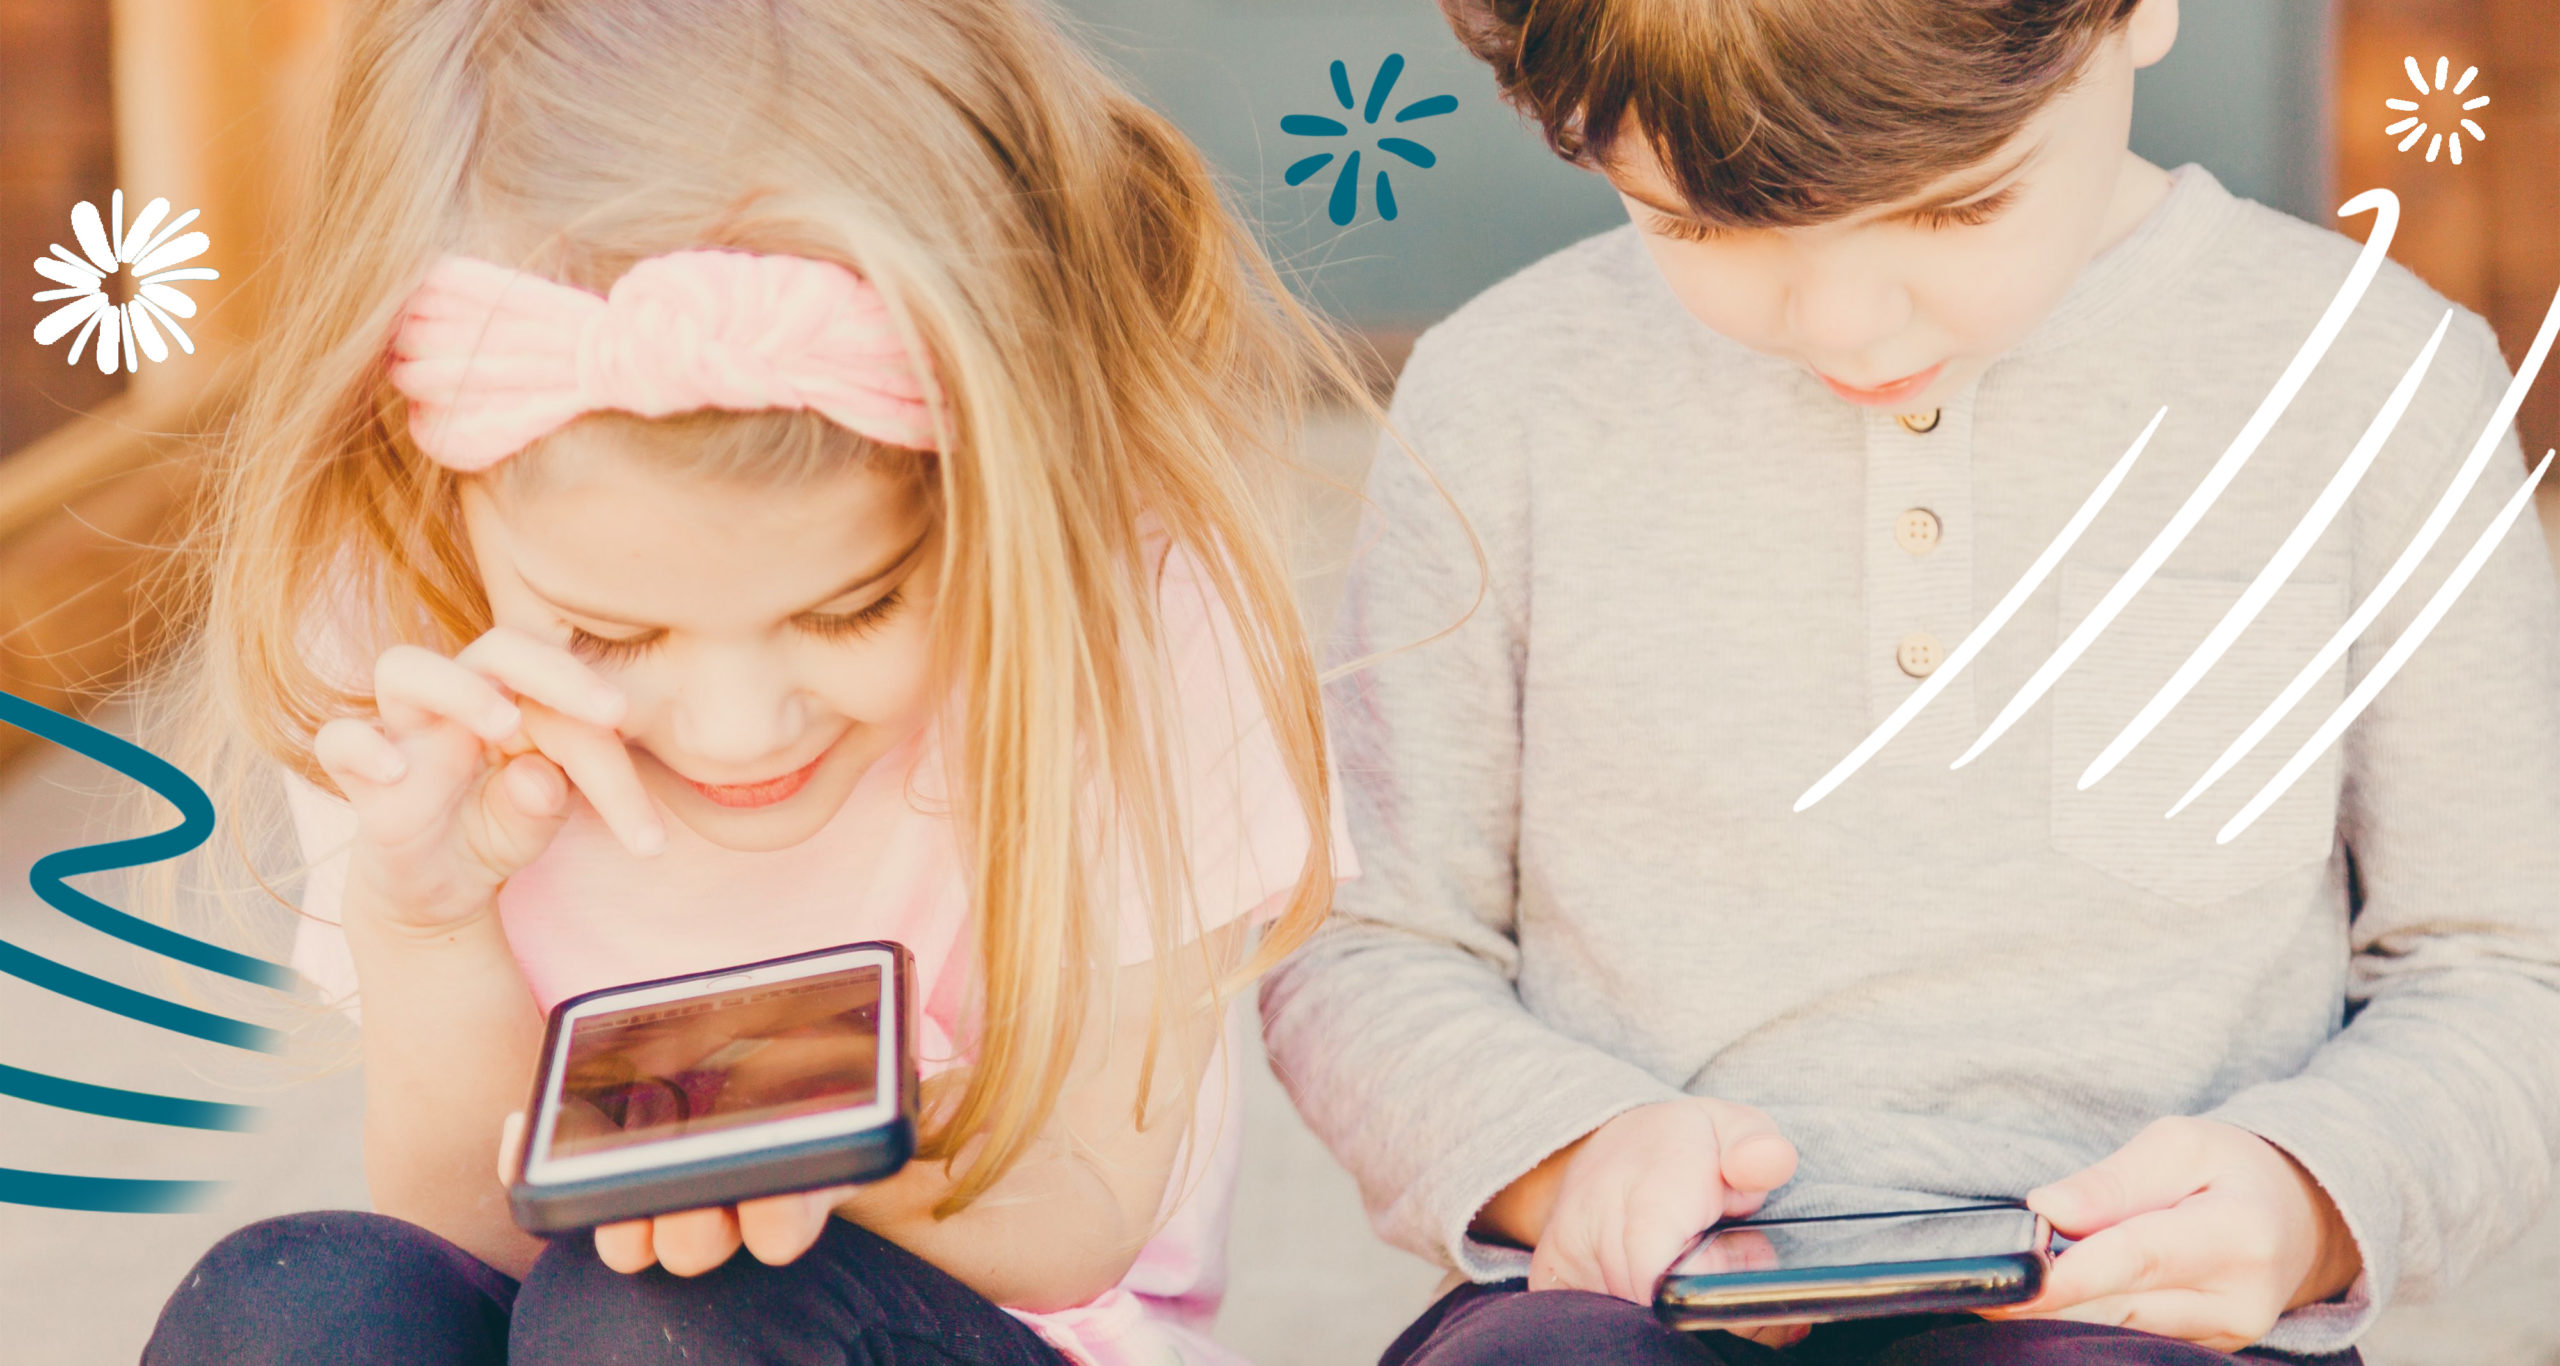 children playing phone - App For Parents To Monitor Their Children